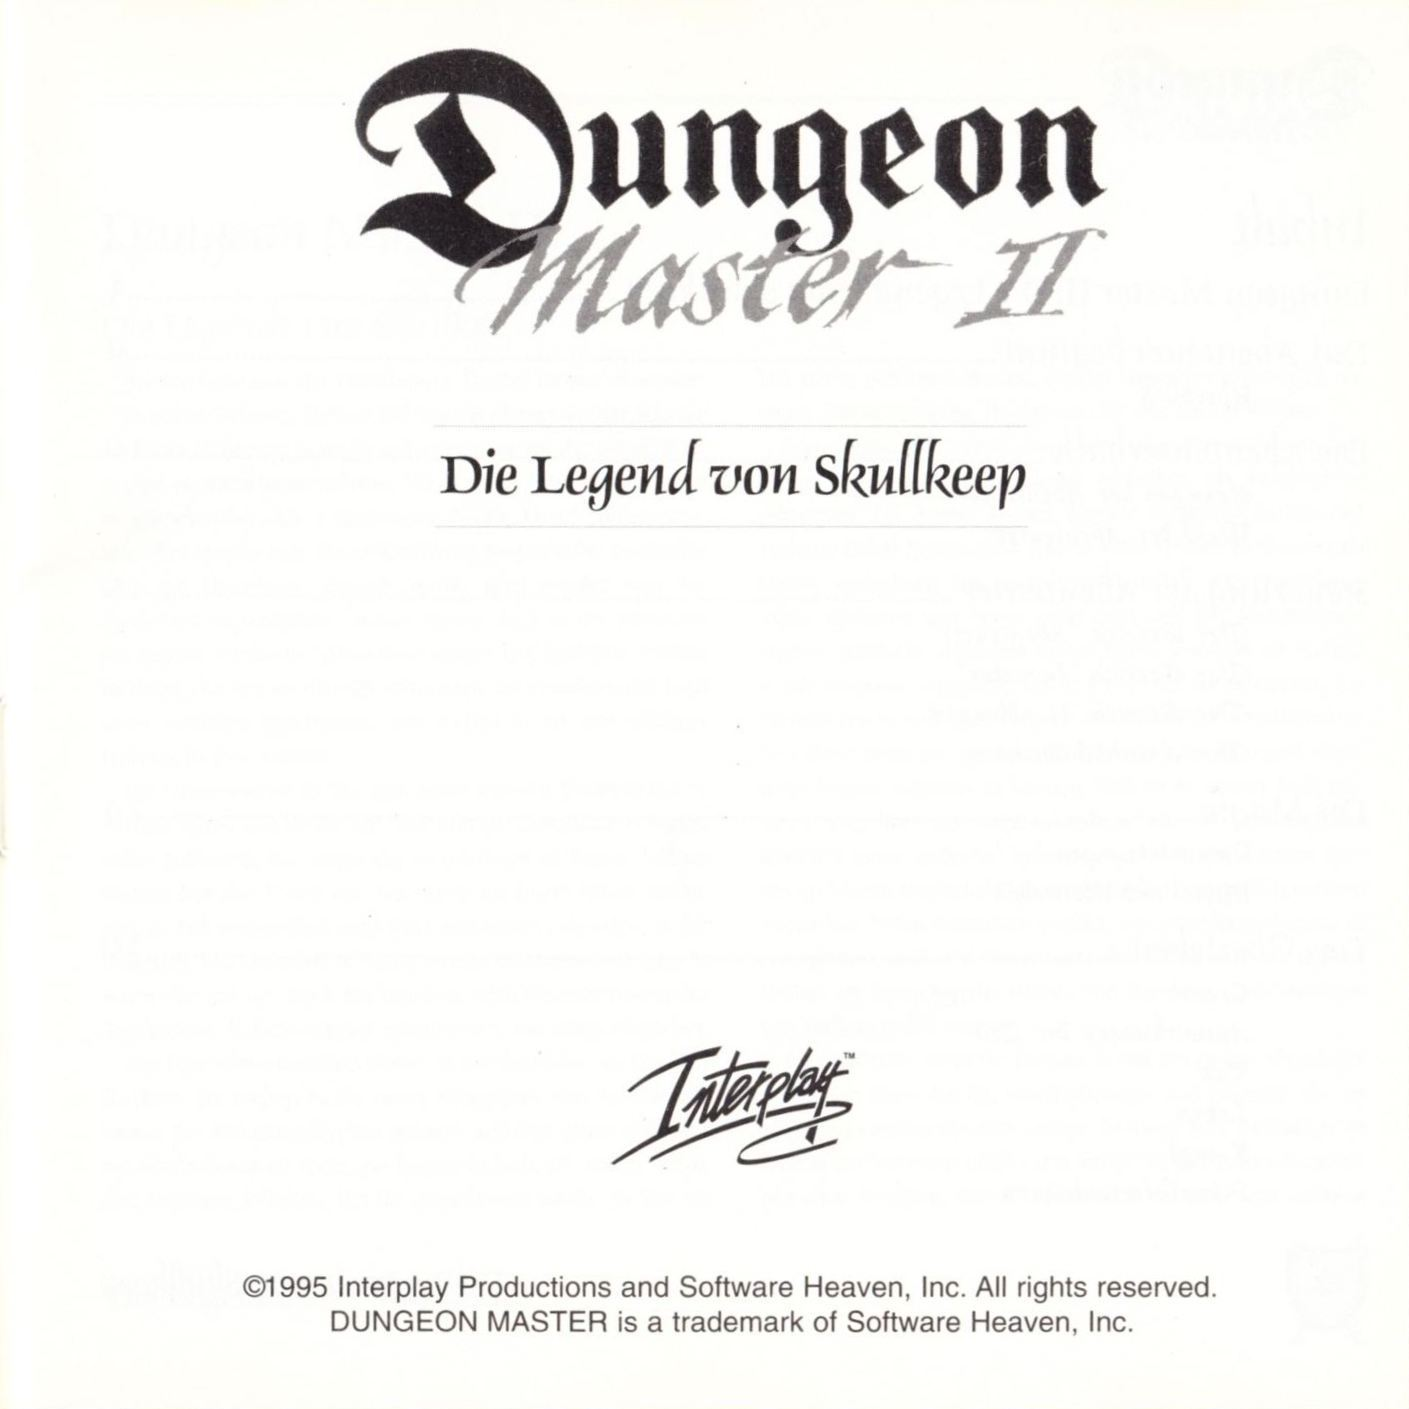 Game - Dungeon Master II - DE - PC - Blackmarket With Booklet - Booklet - Page 003 - Scan